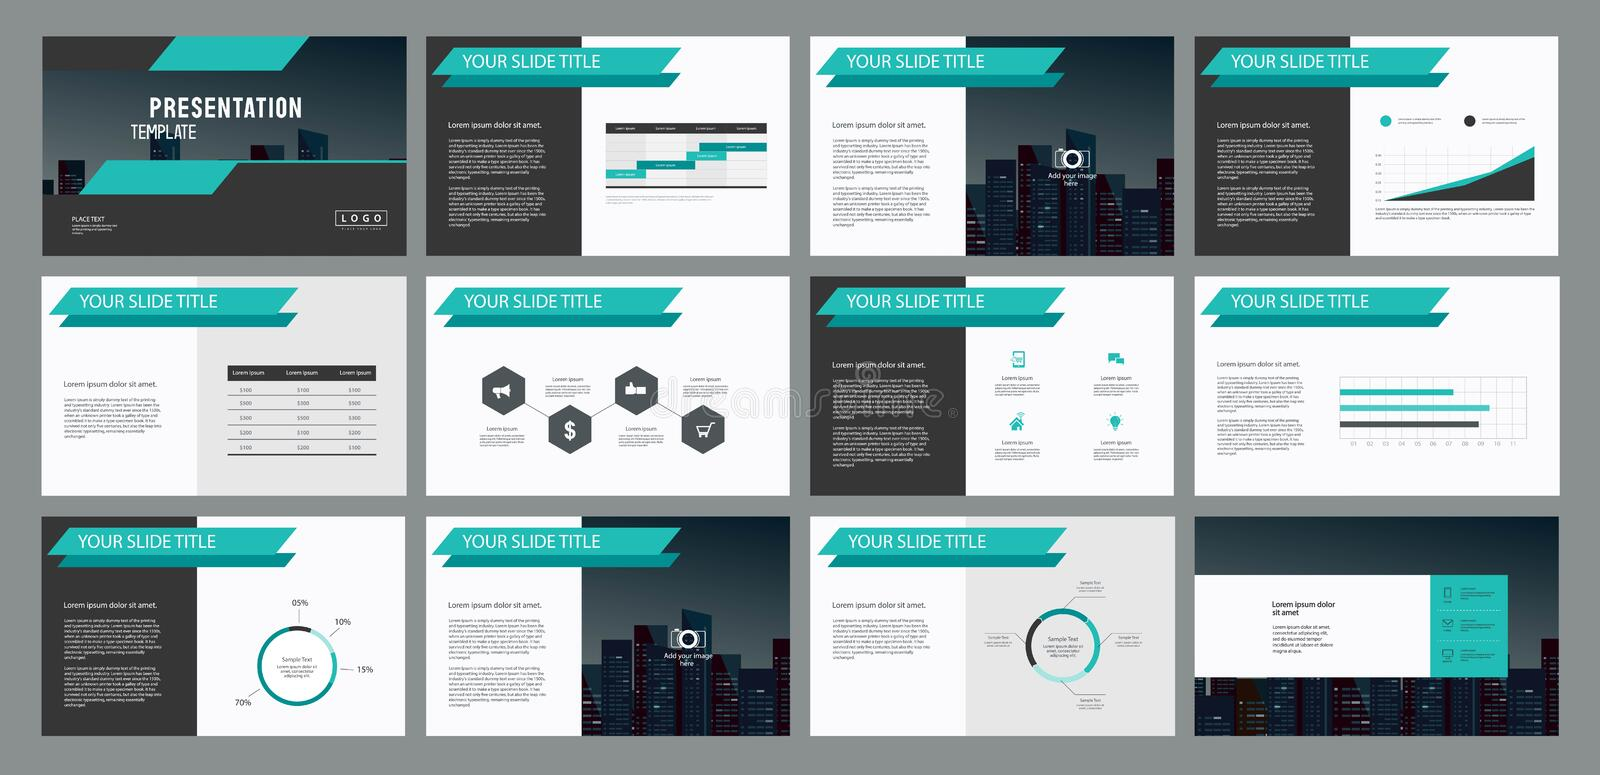 Page Layout Design And Info Graphics Elements For Presentation - Unique company profile presentation template ideas